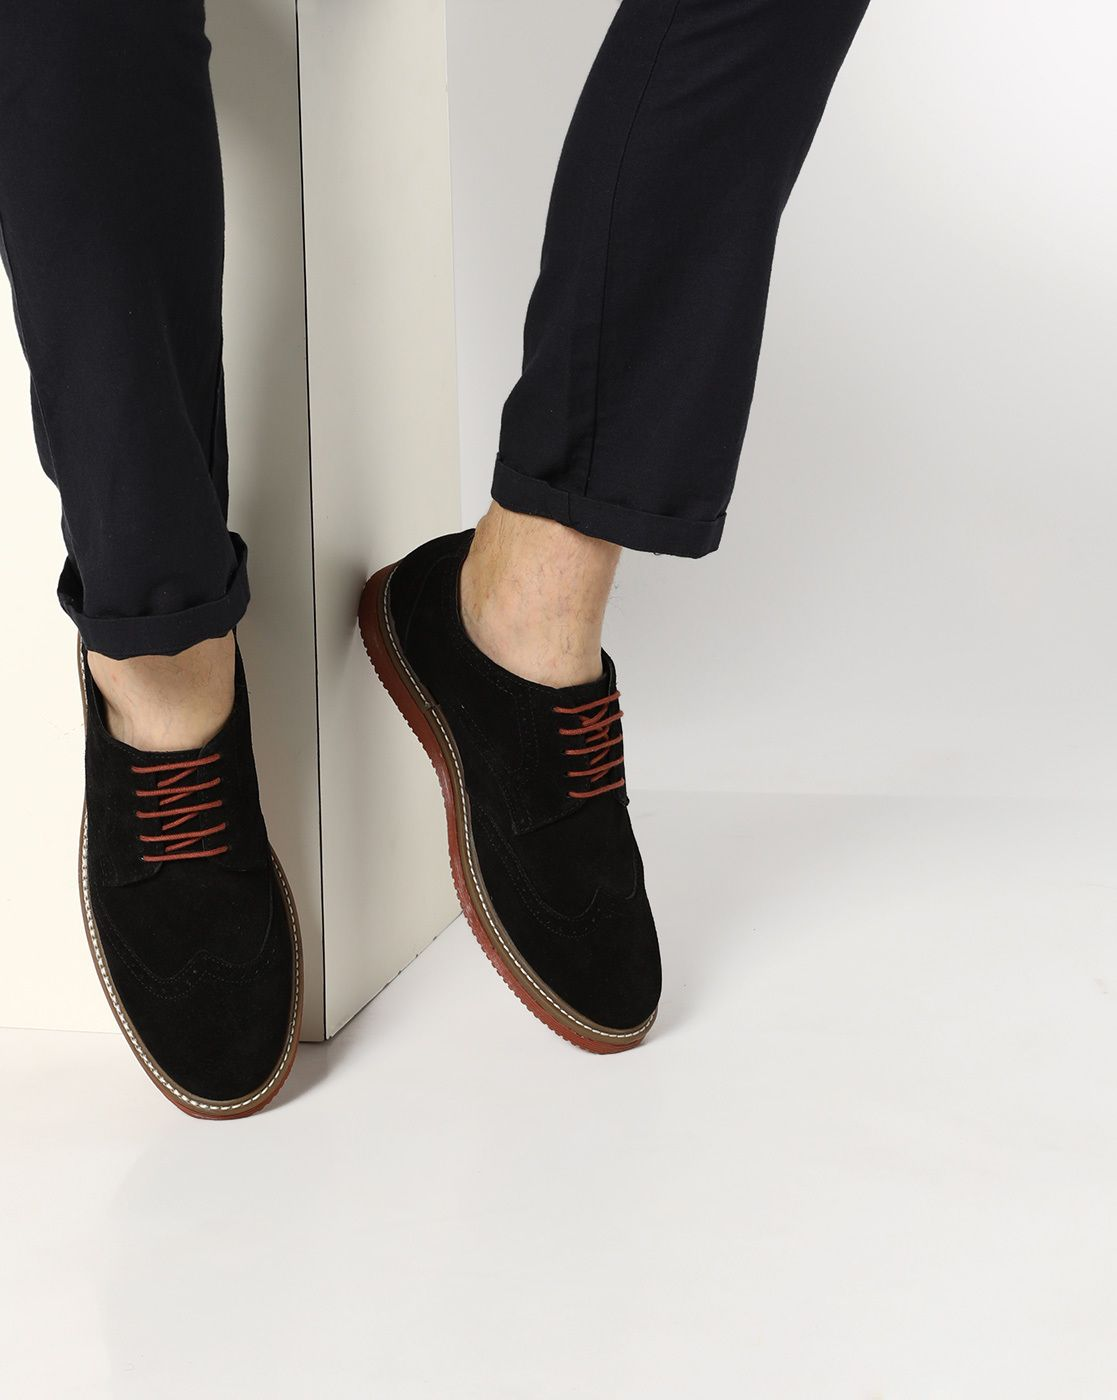 AJIO #Black Genuine Leather N9 Treated #Lace Up Shoes With